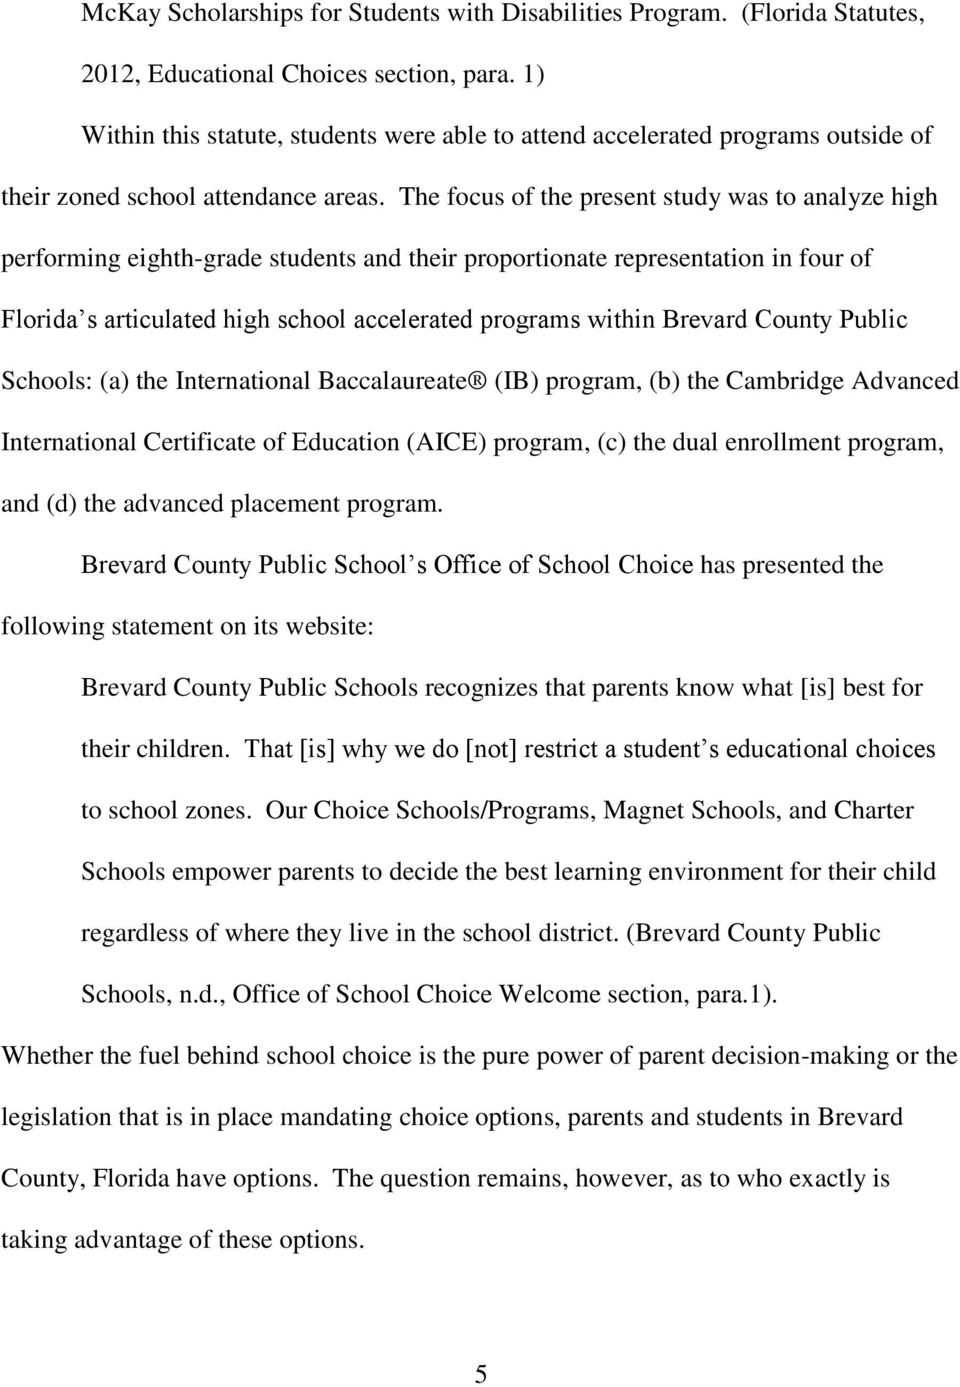 The focus of the present study was to analyze high performing eighth-grade students and their proportionate representation in four of Florida s articulated high school accelerated programs within